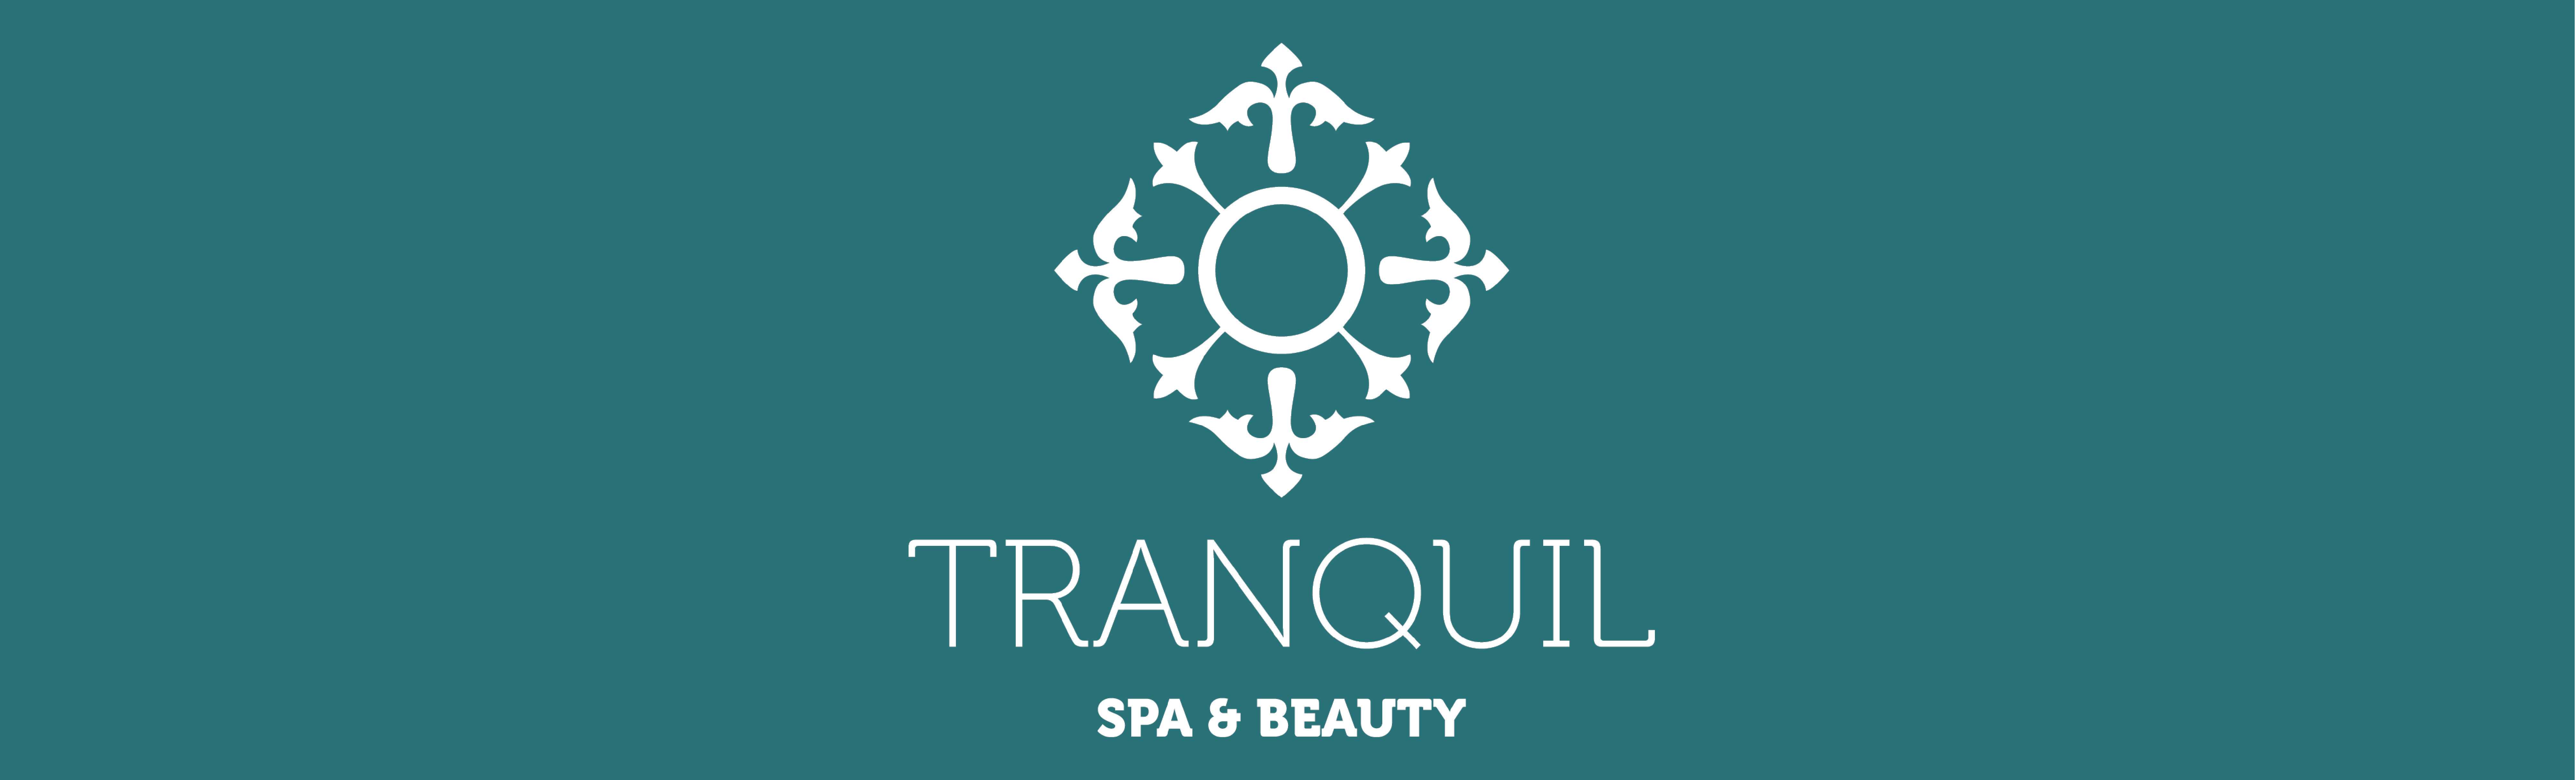 Tranquil Spa Banner - concept visual